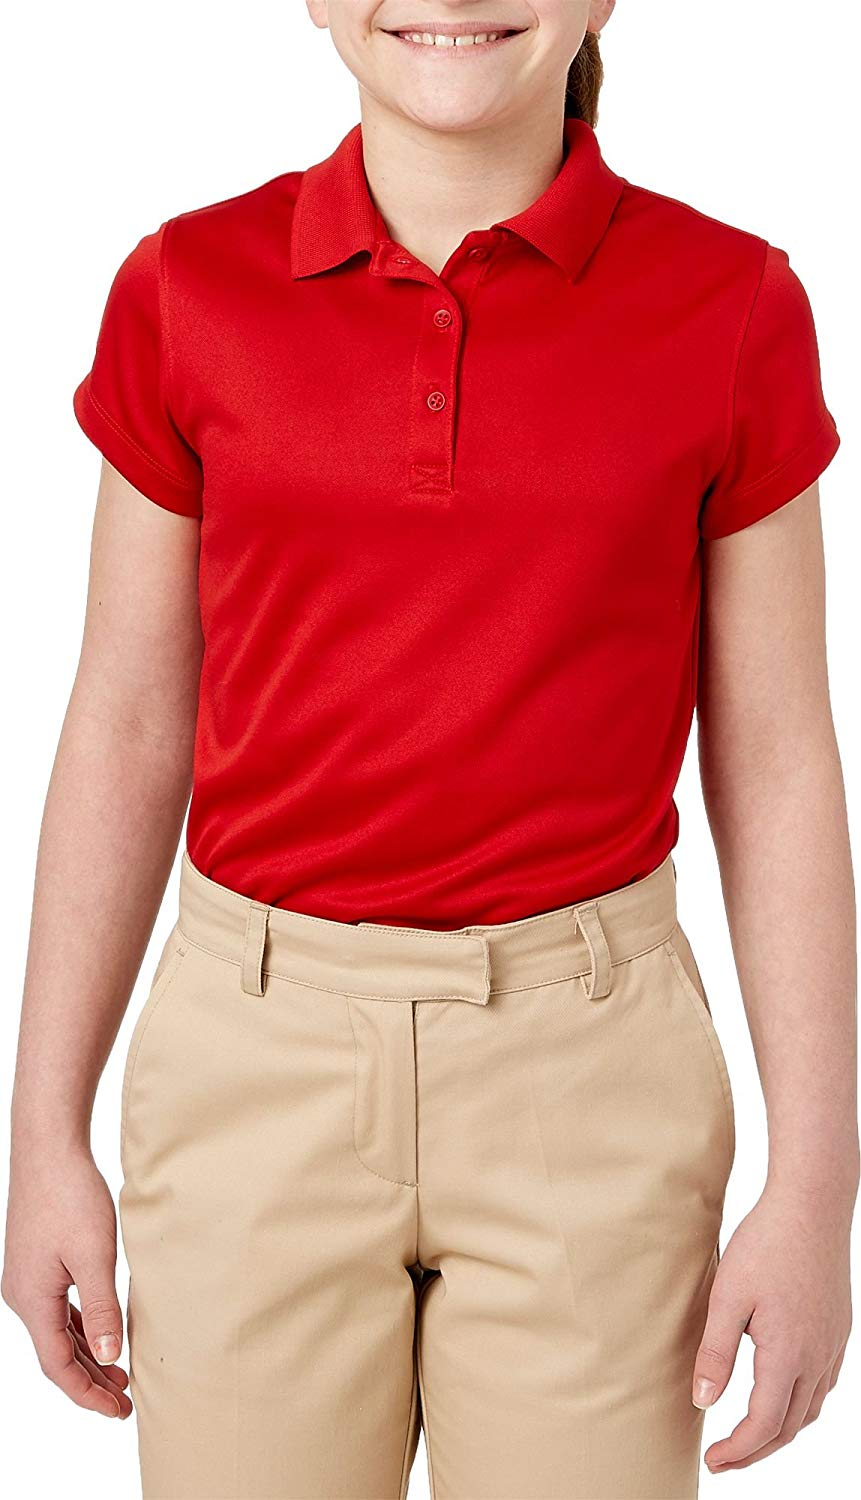 a1a006aa2 Childrens Red Polo T Shirts - DREAMWORKS